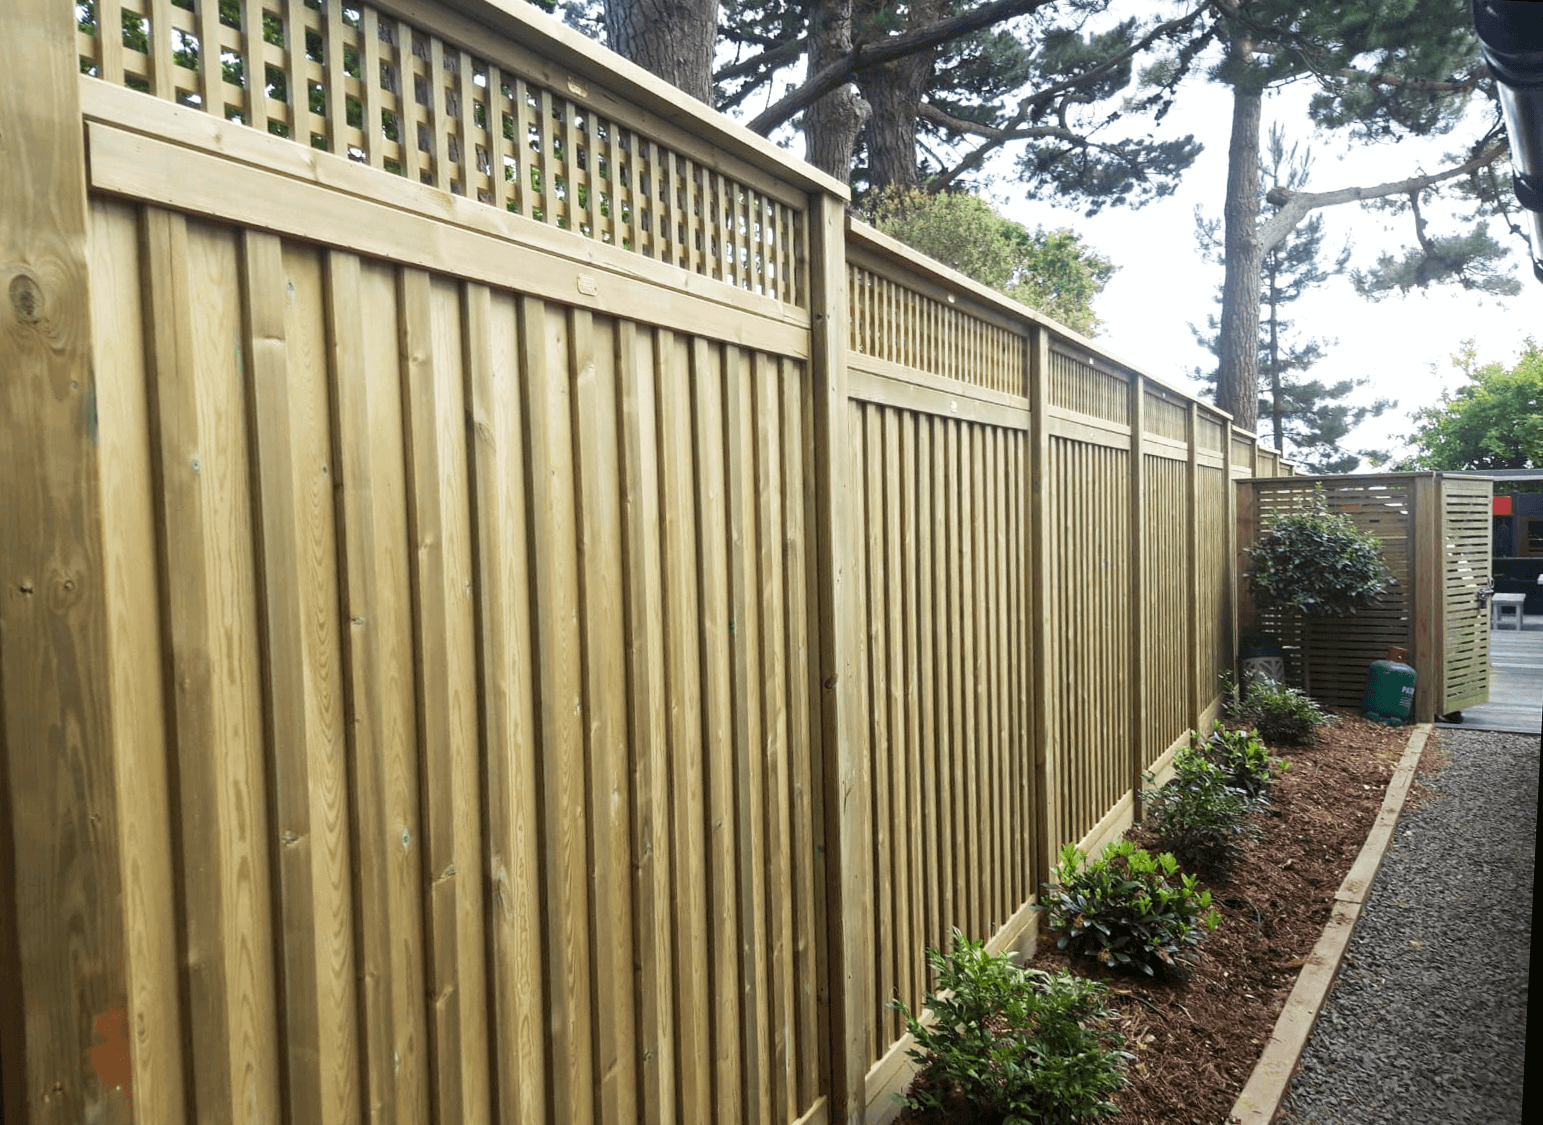 Chilham fence panel and lattice trellis